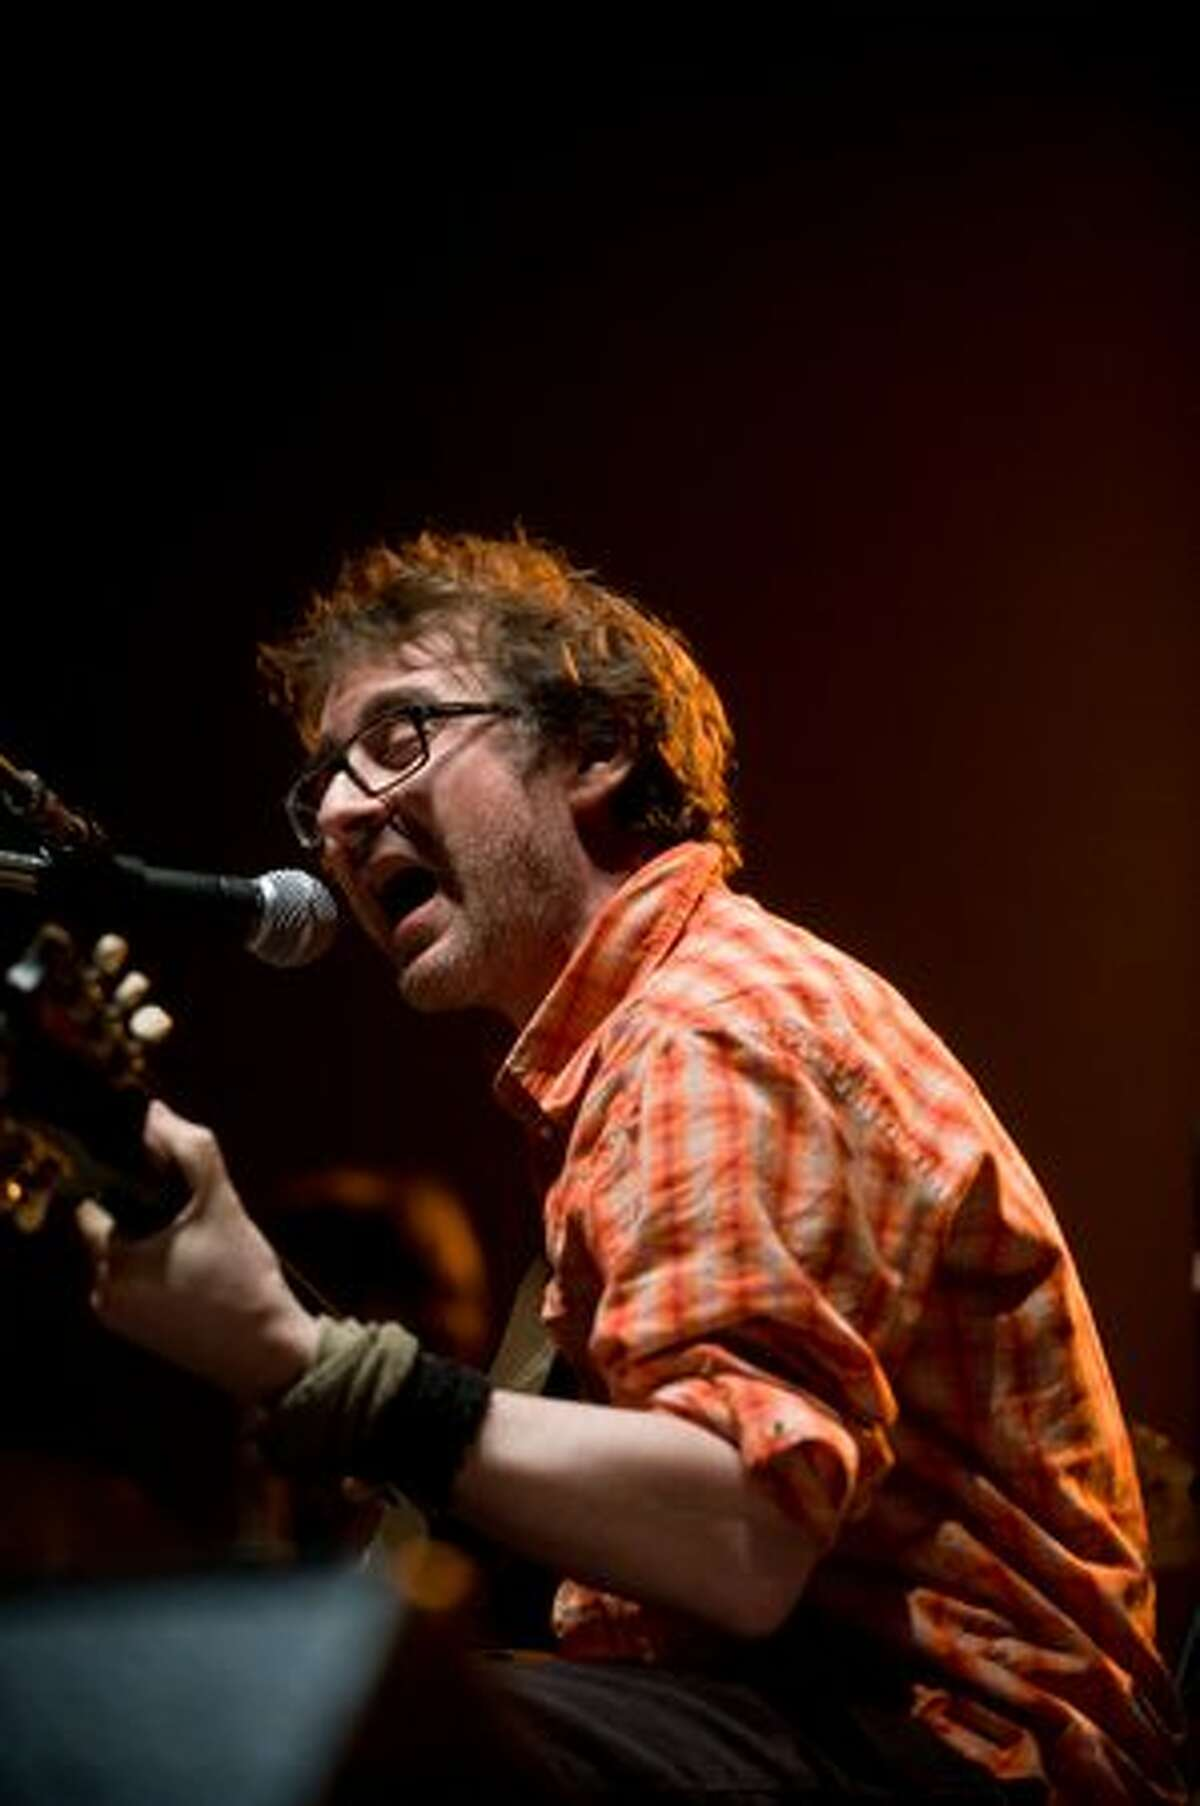 Califone performs on stage at the Paramount Theatre opening for Wilco Wednesday night. (Chona Kasinger/seattlepi.com)